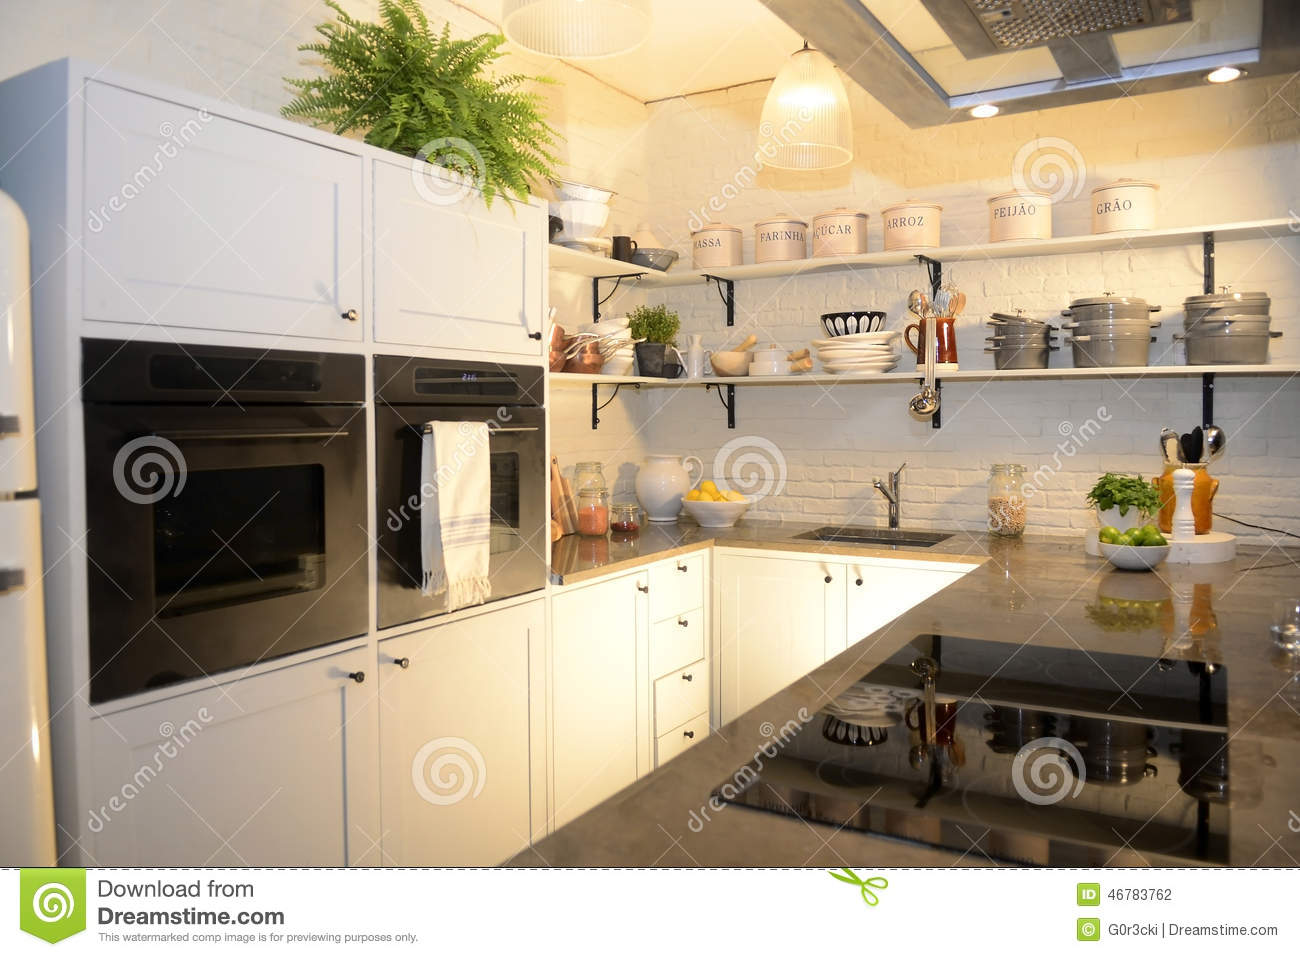 Belle cuisine blanche moderne photo stock   image: 46783762